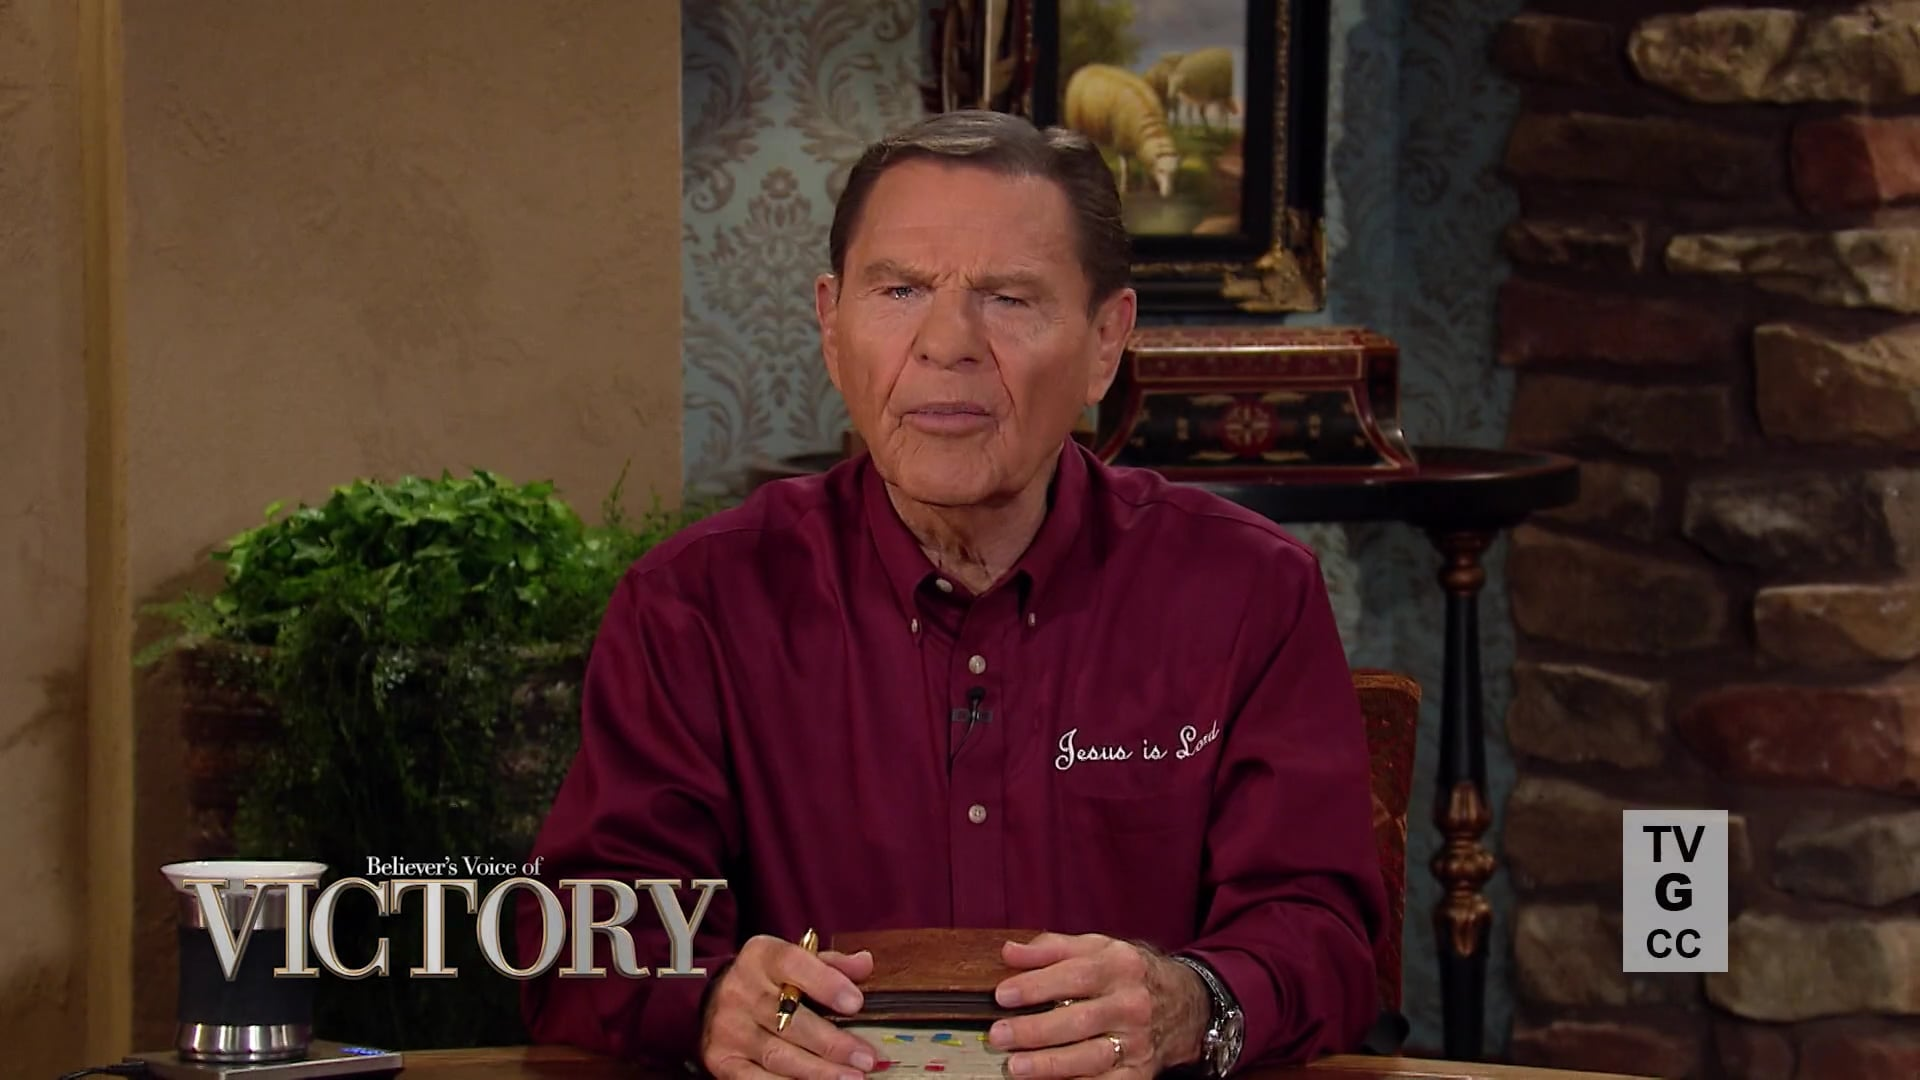 Why is it important to study the fundamentals of faith? Watch Believer's Voice of Victory as Kenneth Copeland joins Mark and Trina Hankins for a powerful discussion about how to build the spirit of faith through time meditating on The WORD of God. When revelation knowledge comes, your victory is on the way!